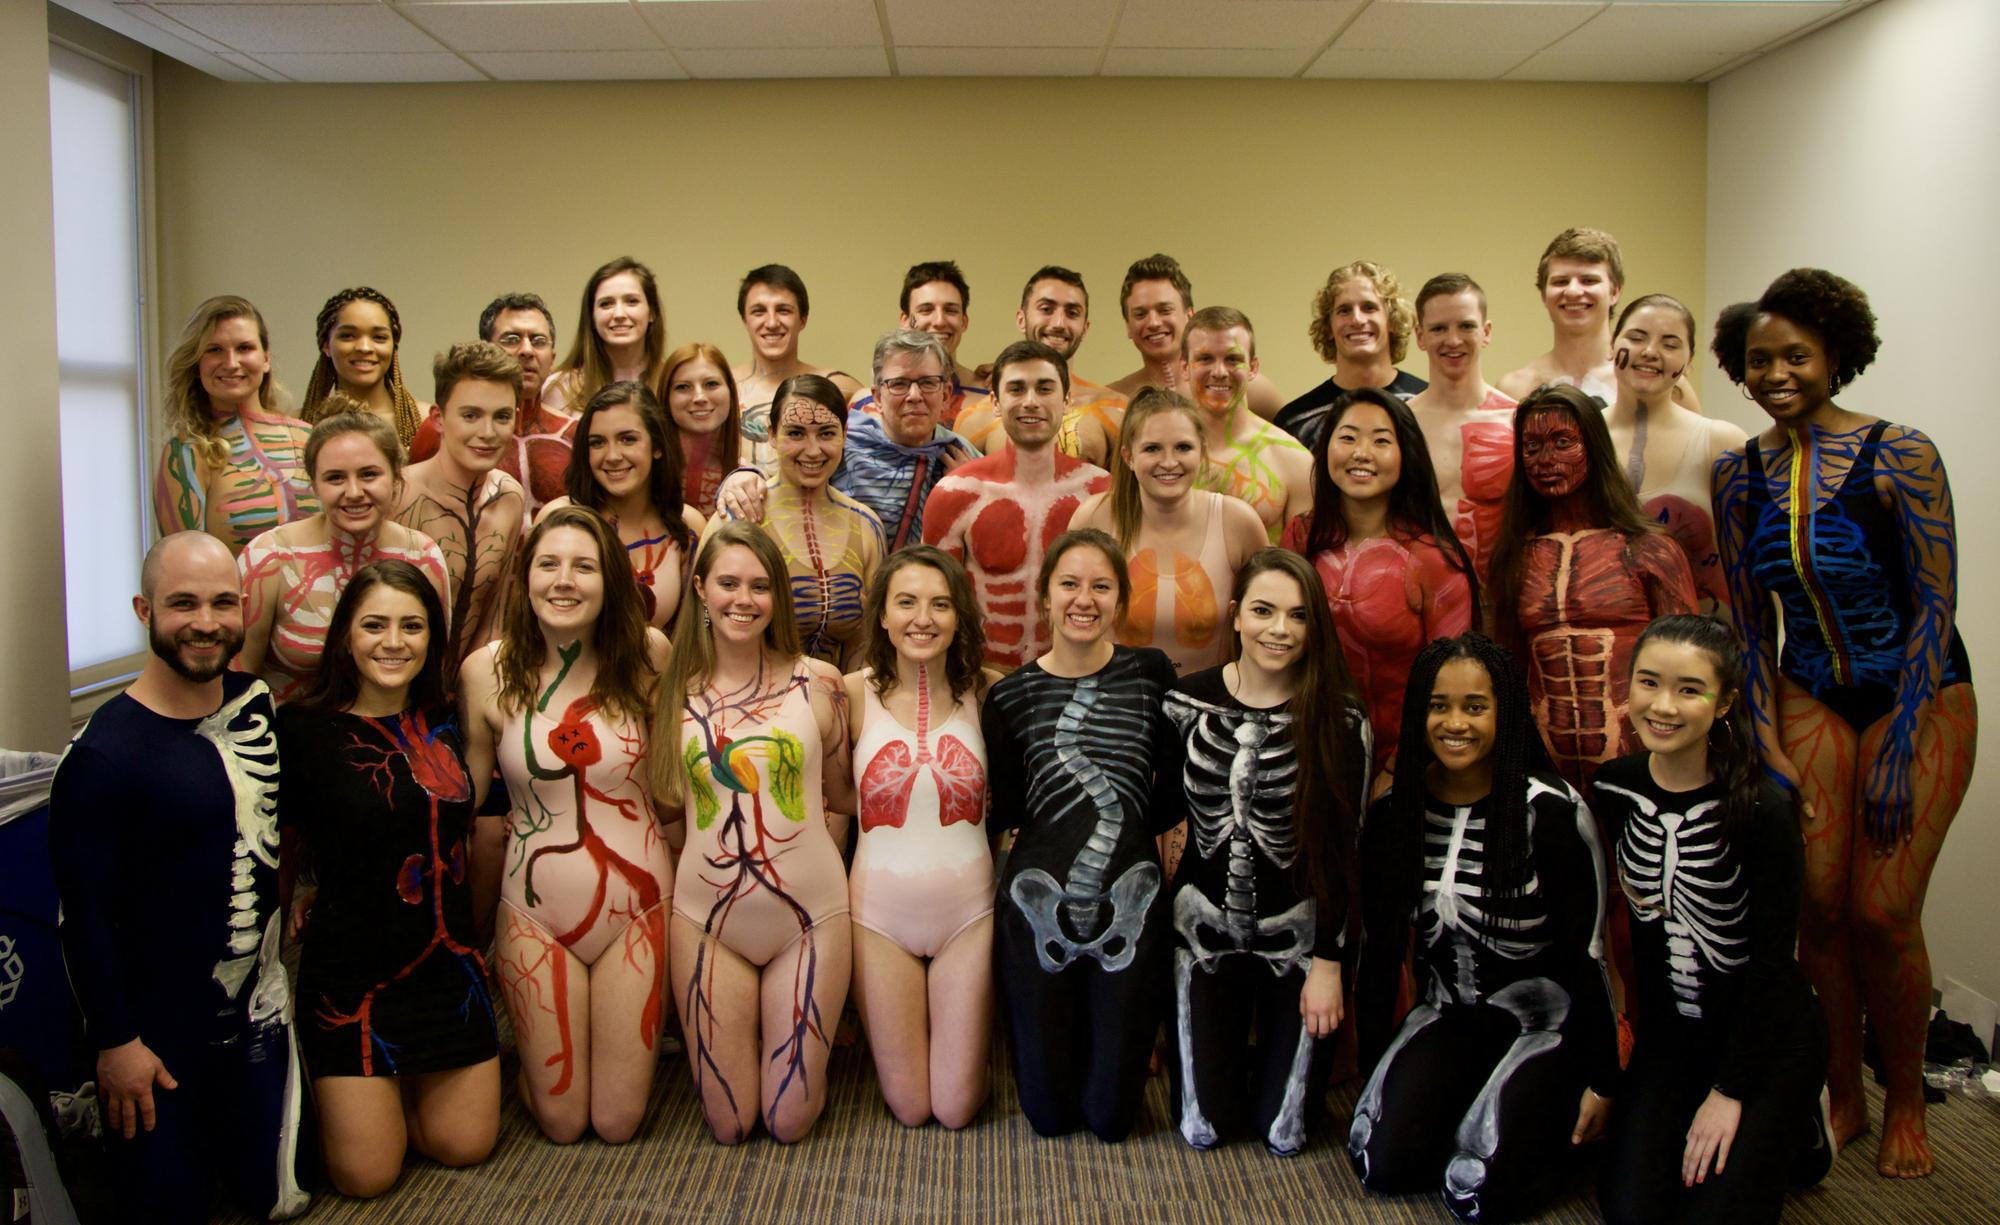 Copy of Phi Delta Epsilon Anatomy Fashion Show - Phi Delta Epsilon in Pittsburgh, PA